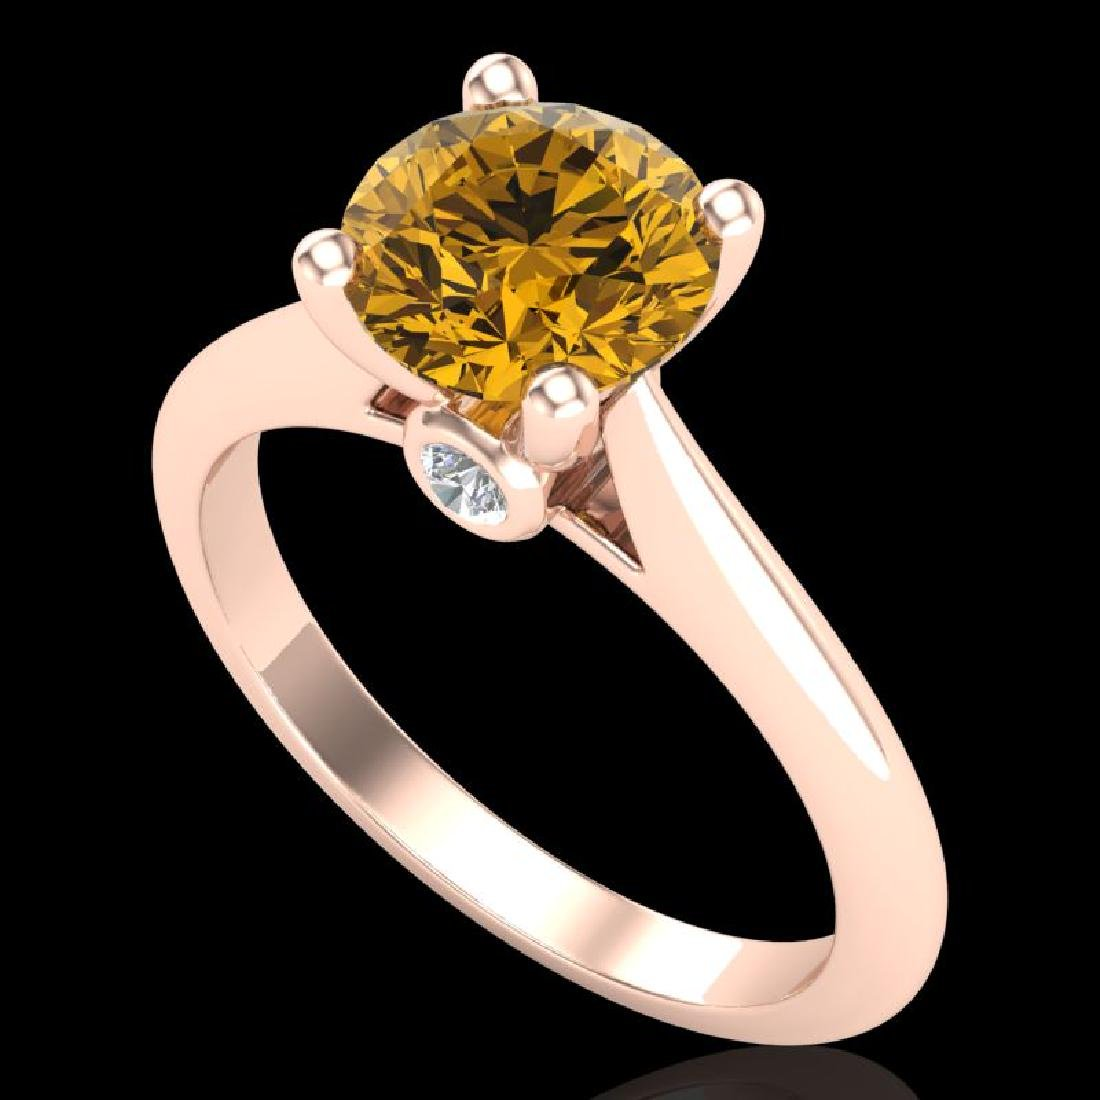 1.6 CTW Intense Fancy Yellow Diamond Engagement Art